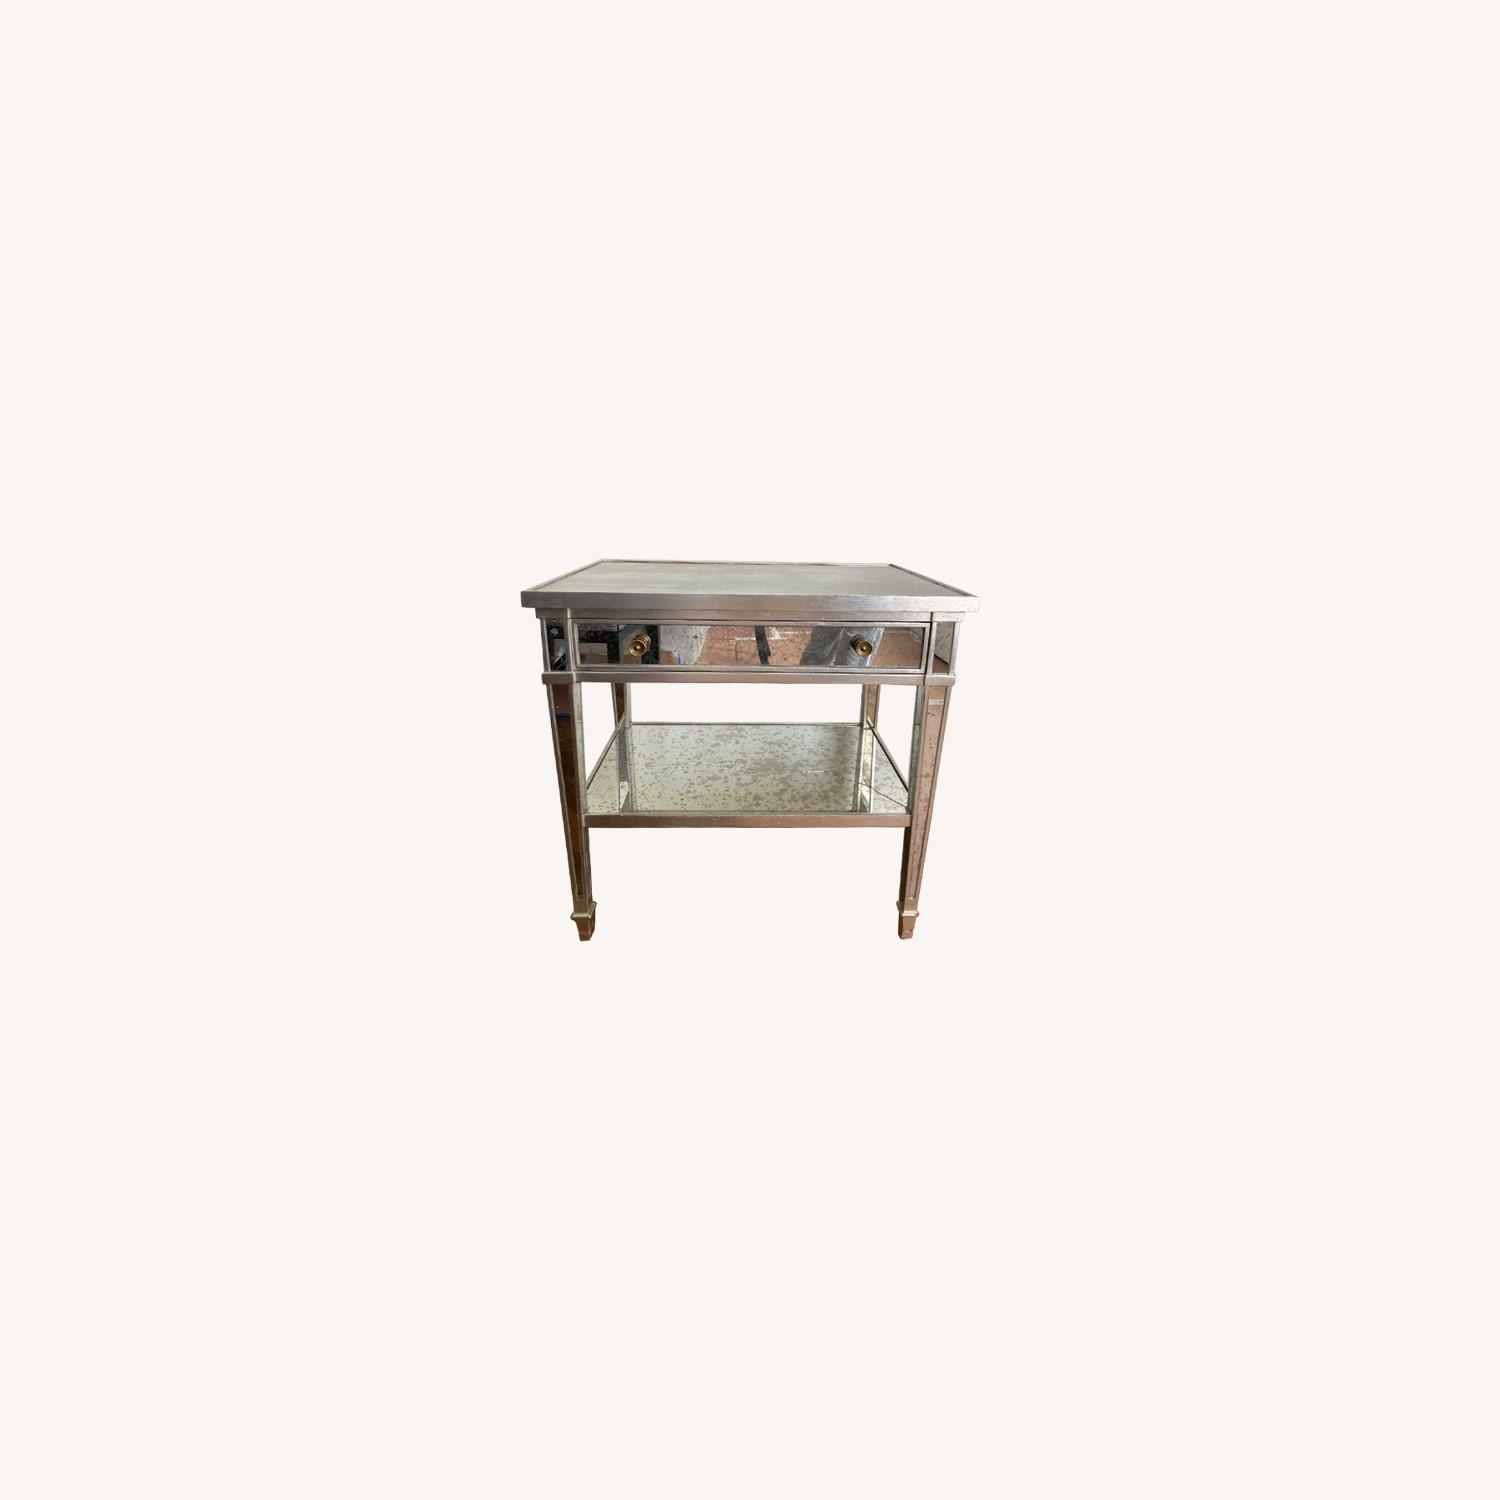 Two Julia Gray Antique Mirrored Nightstands - image-0